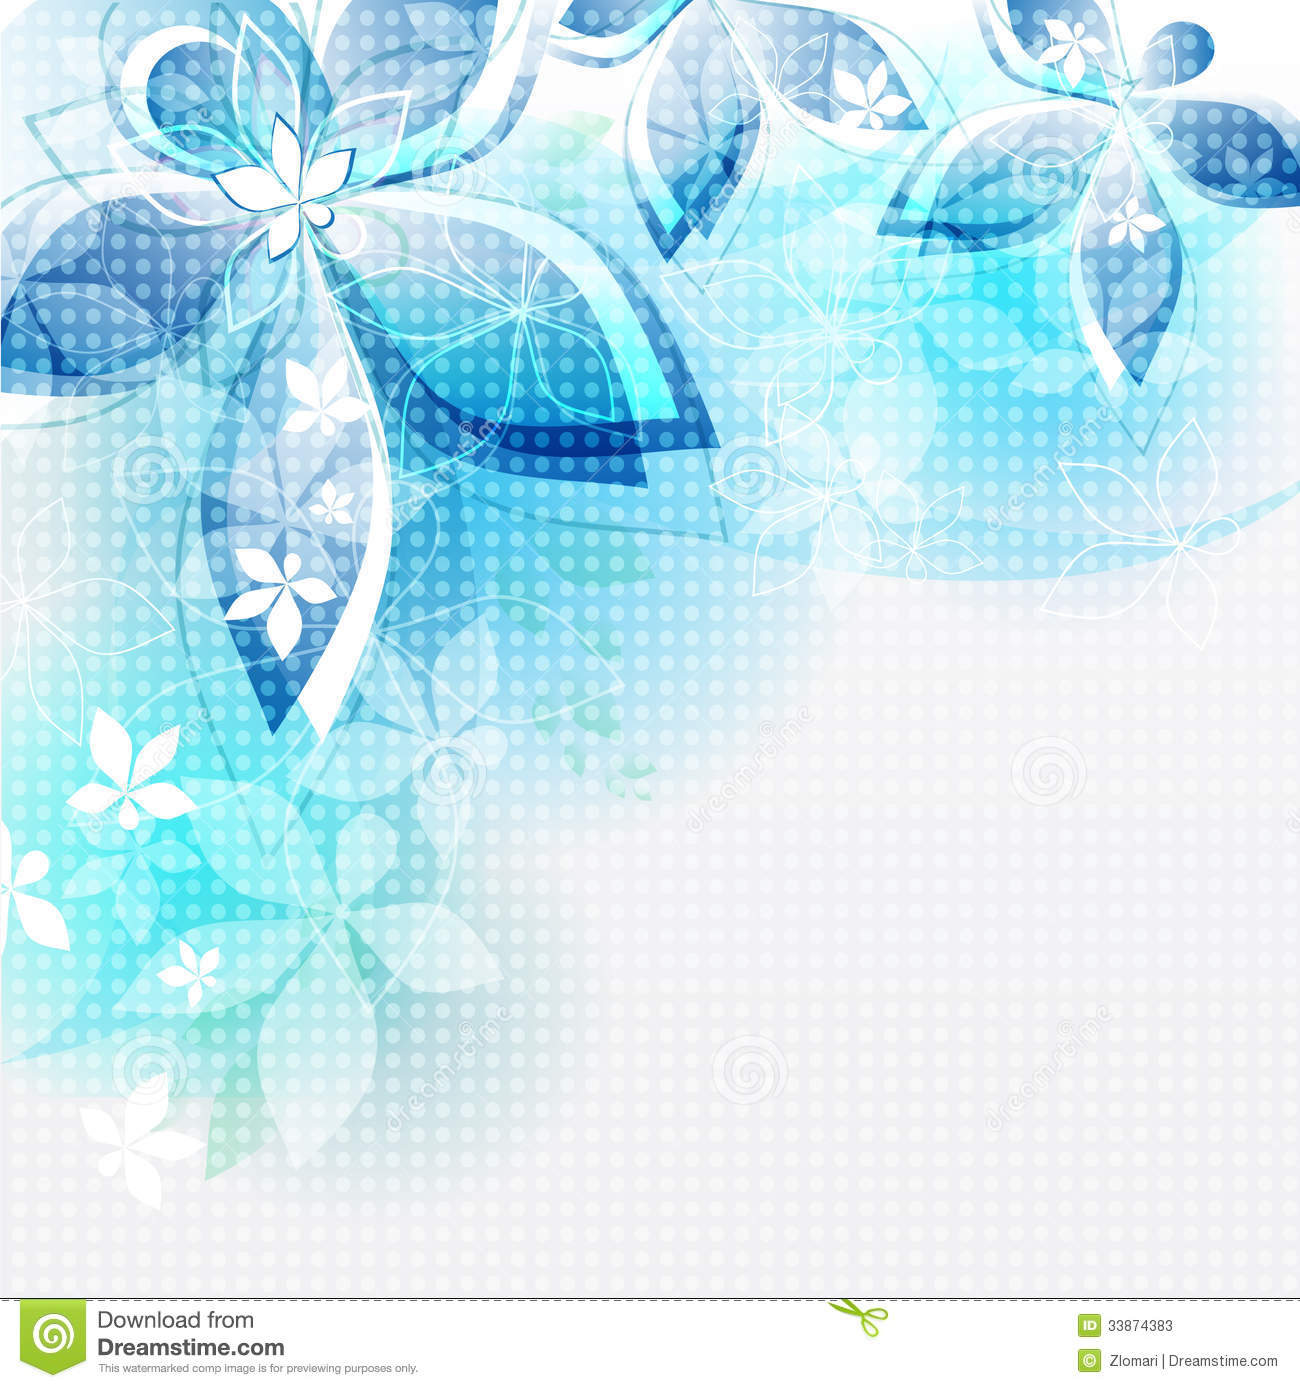 Abstract Flower Background With Decoration Elements For: Abstract Background Blue Flowers. Vector Illustrat Stock